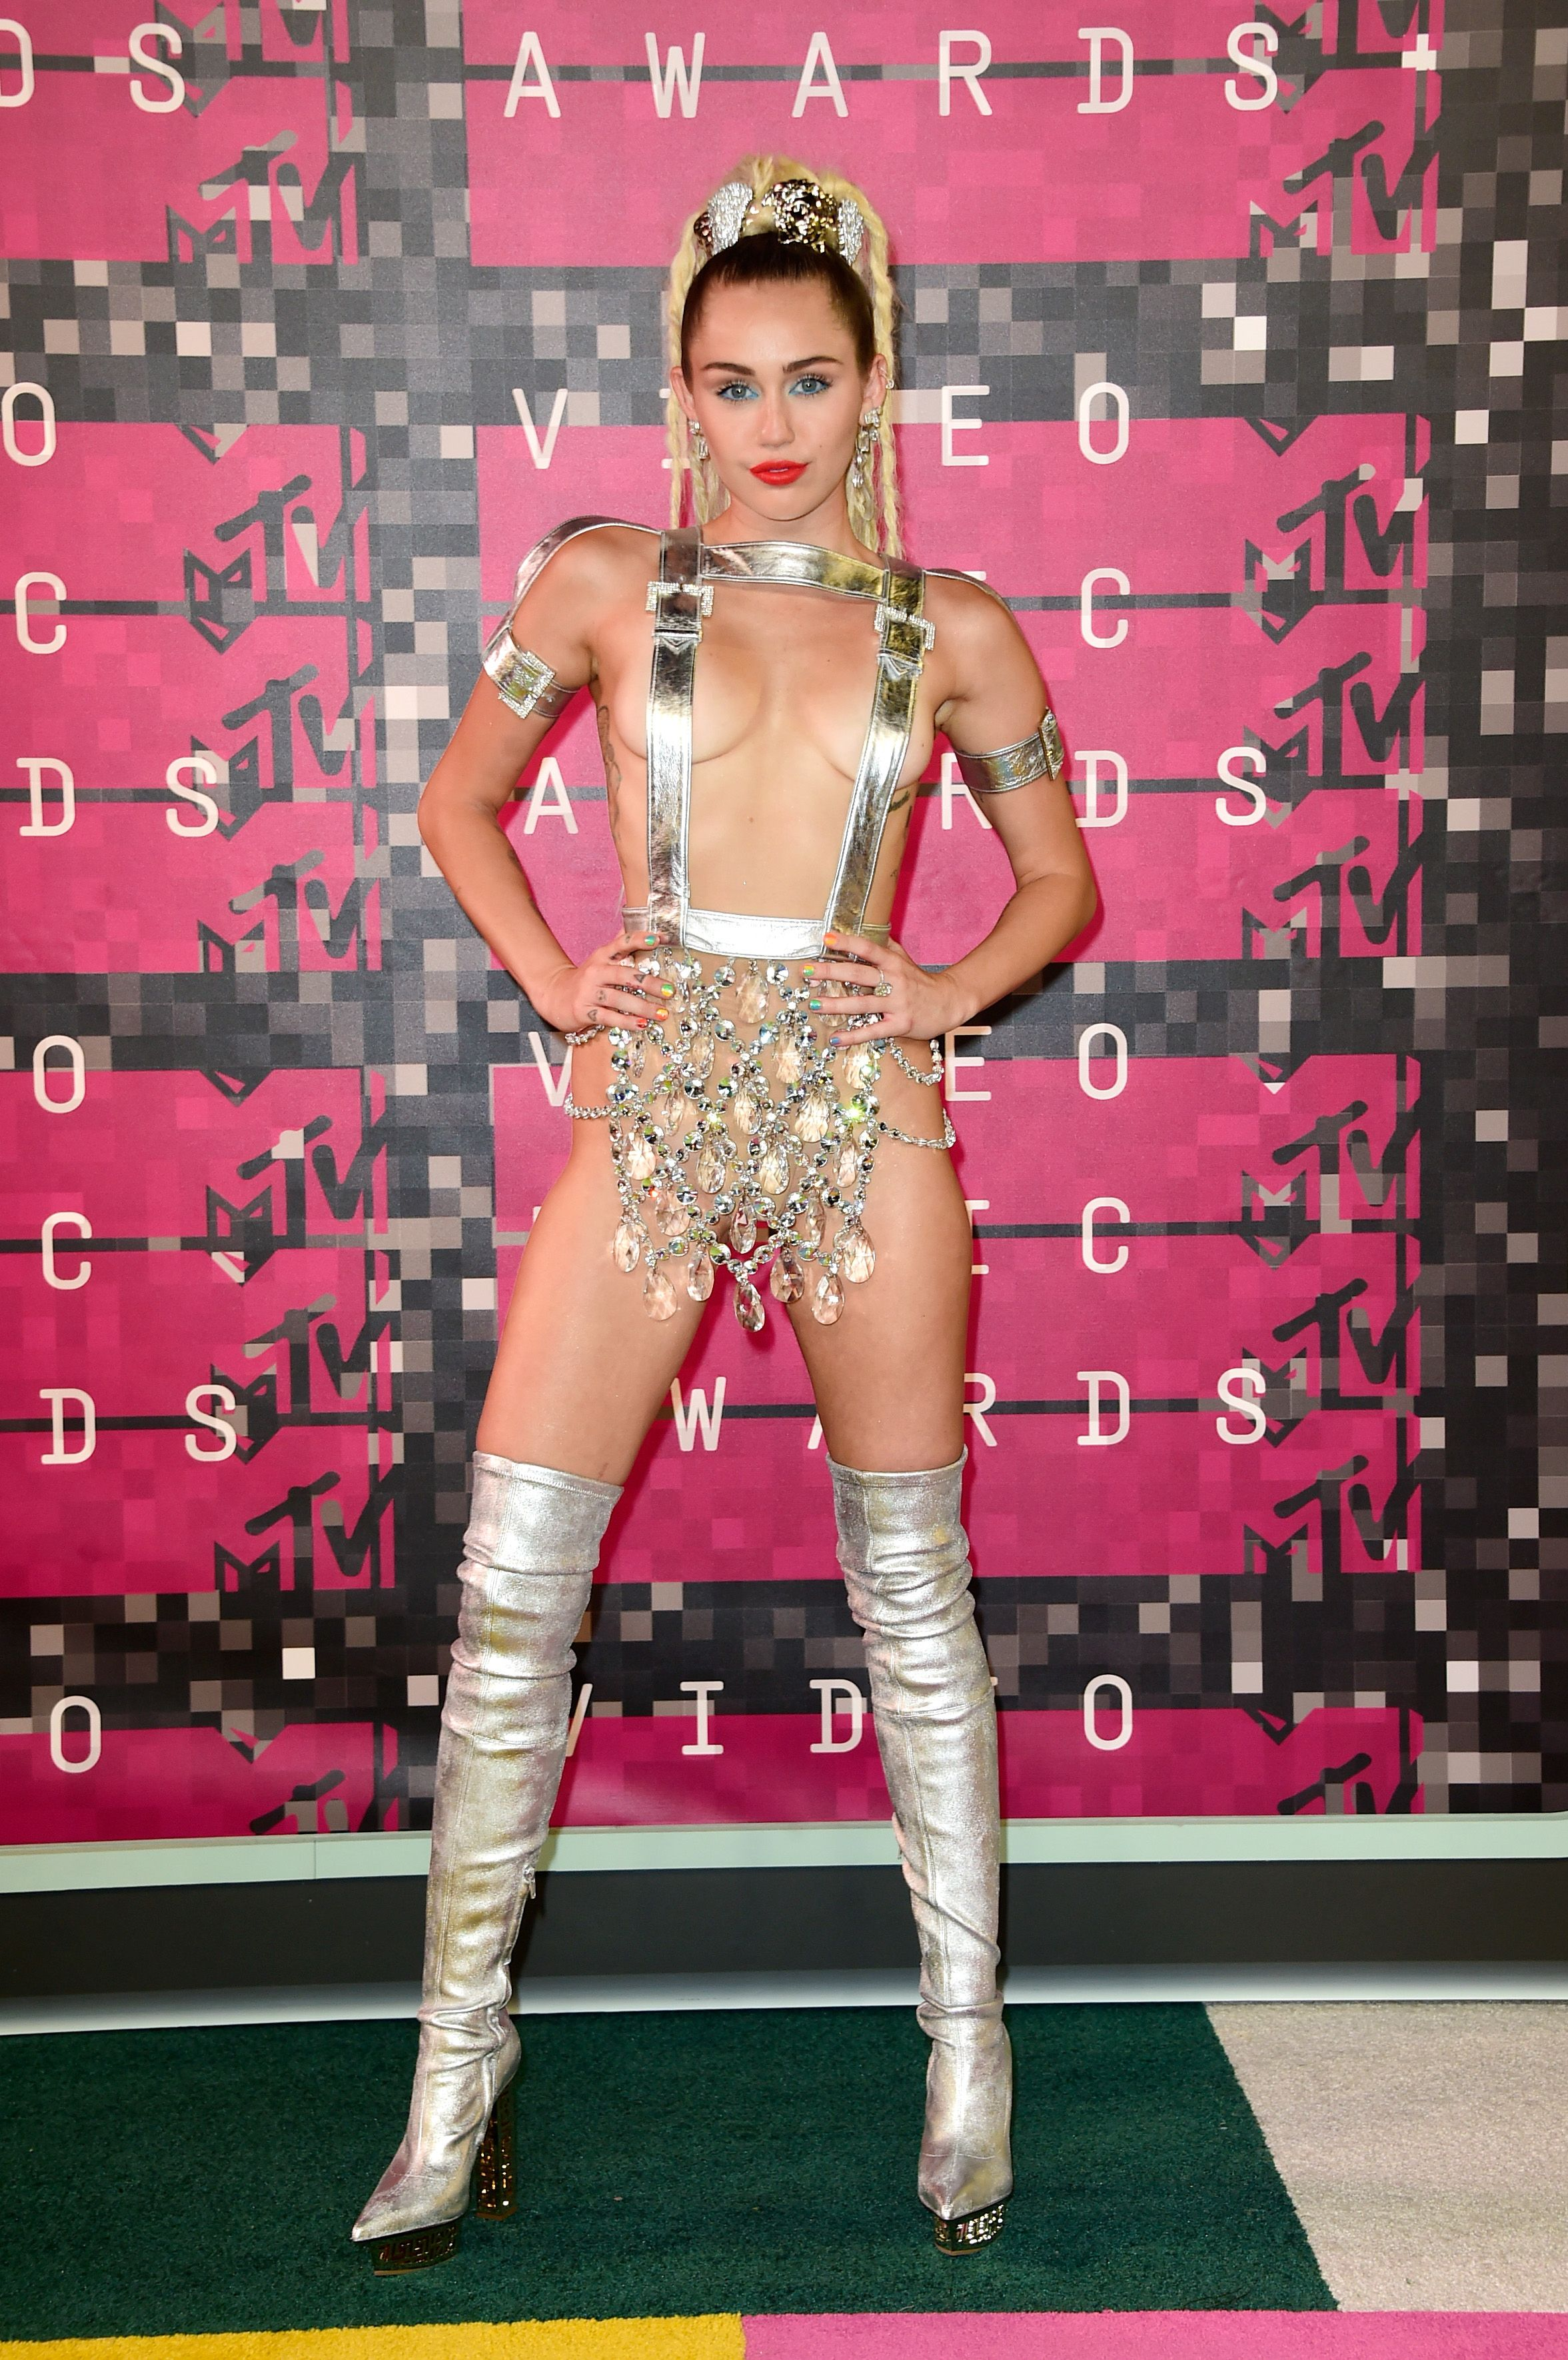 MTV VMA 2015: Miley's Insane Outfits, Bieber Cries, Swift wins Big!